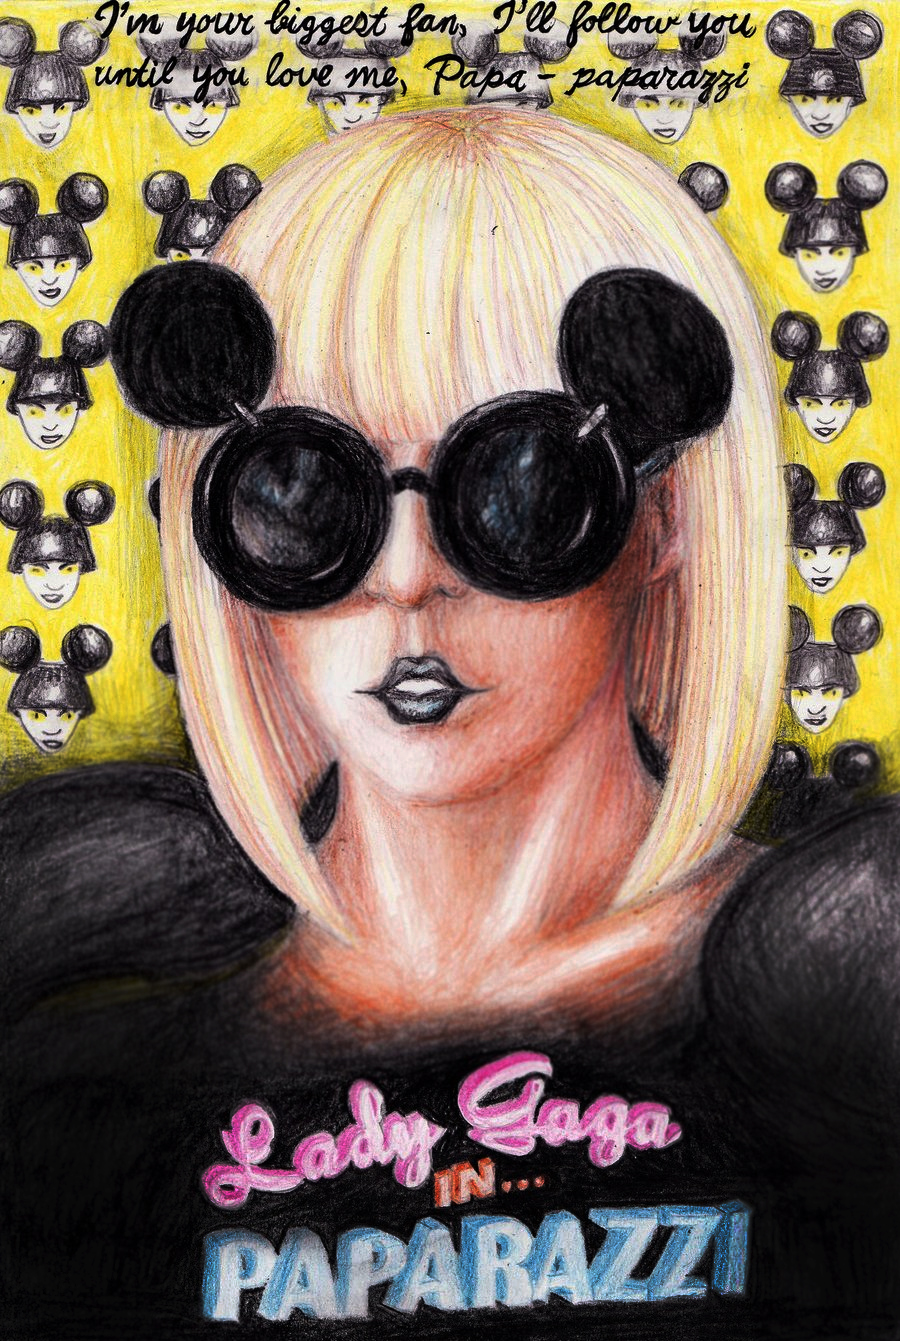 Lady GaGa in Paparazzi by marvin102019 on DeviantArt